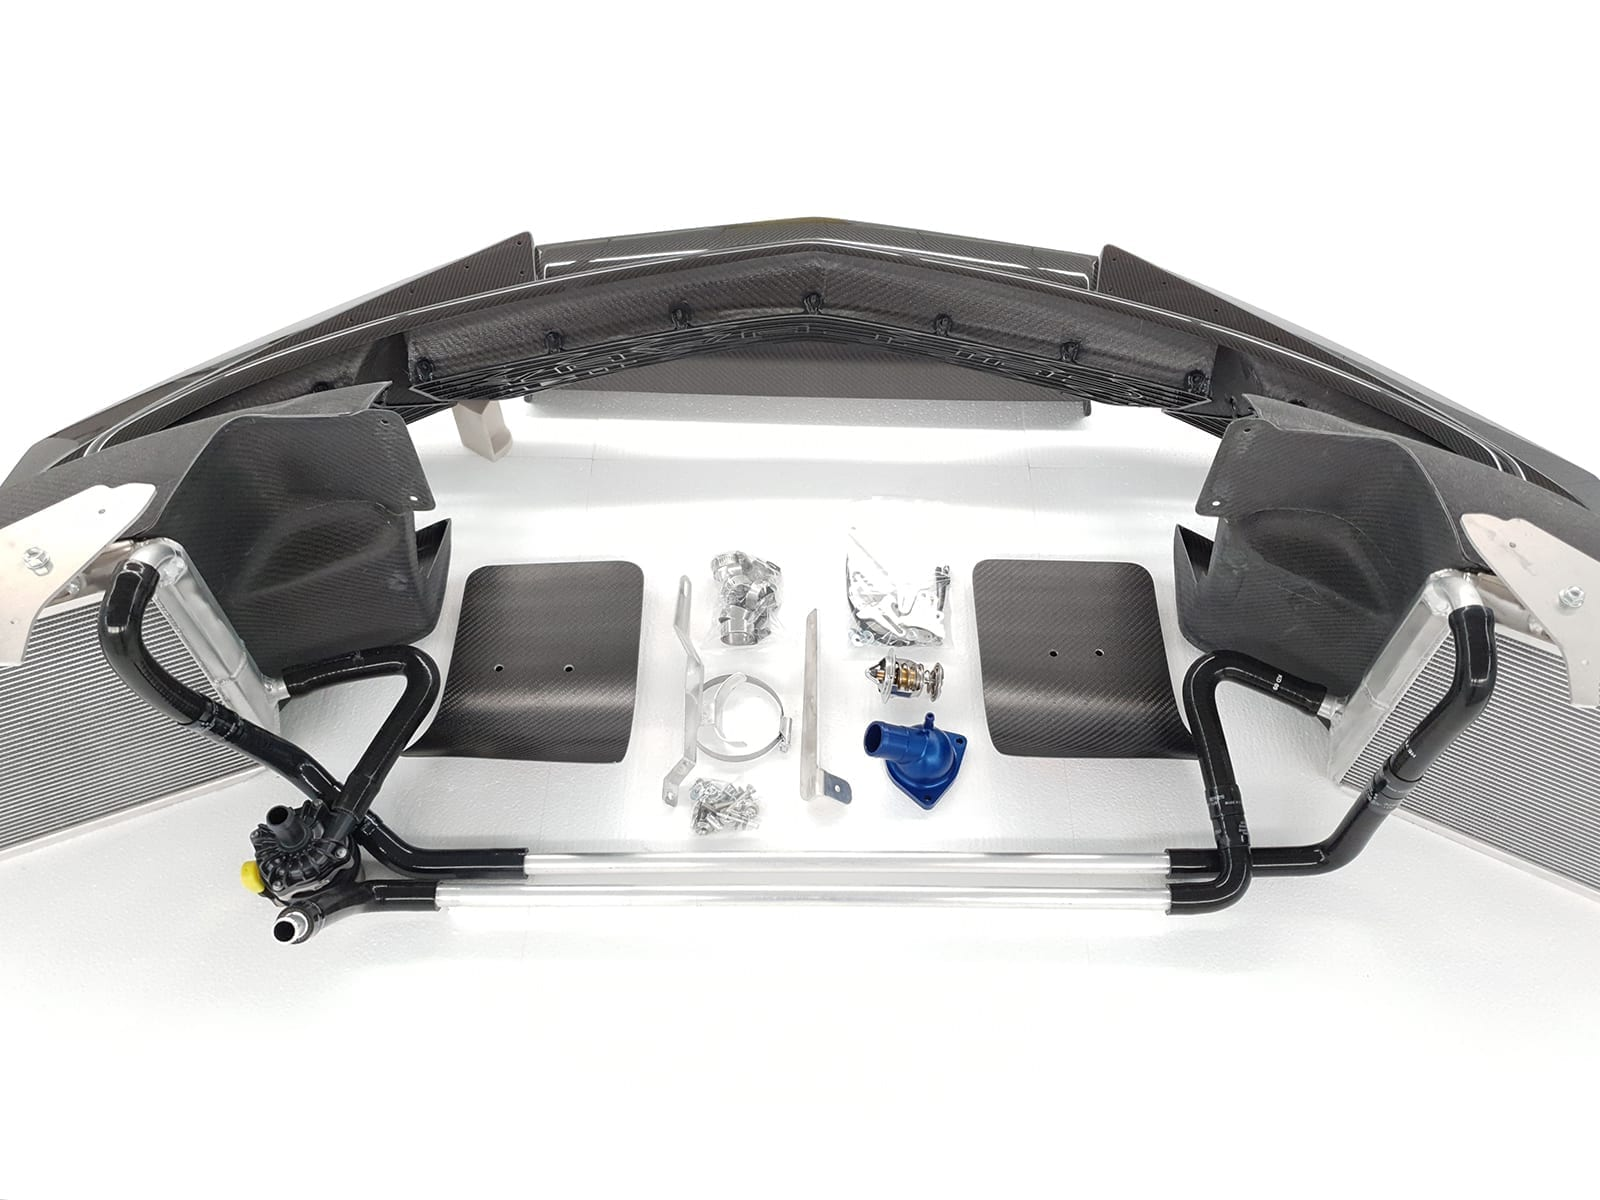 Callaway HD Cooling System